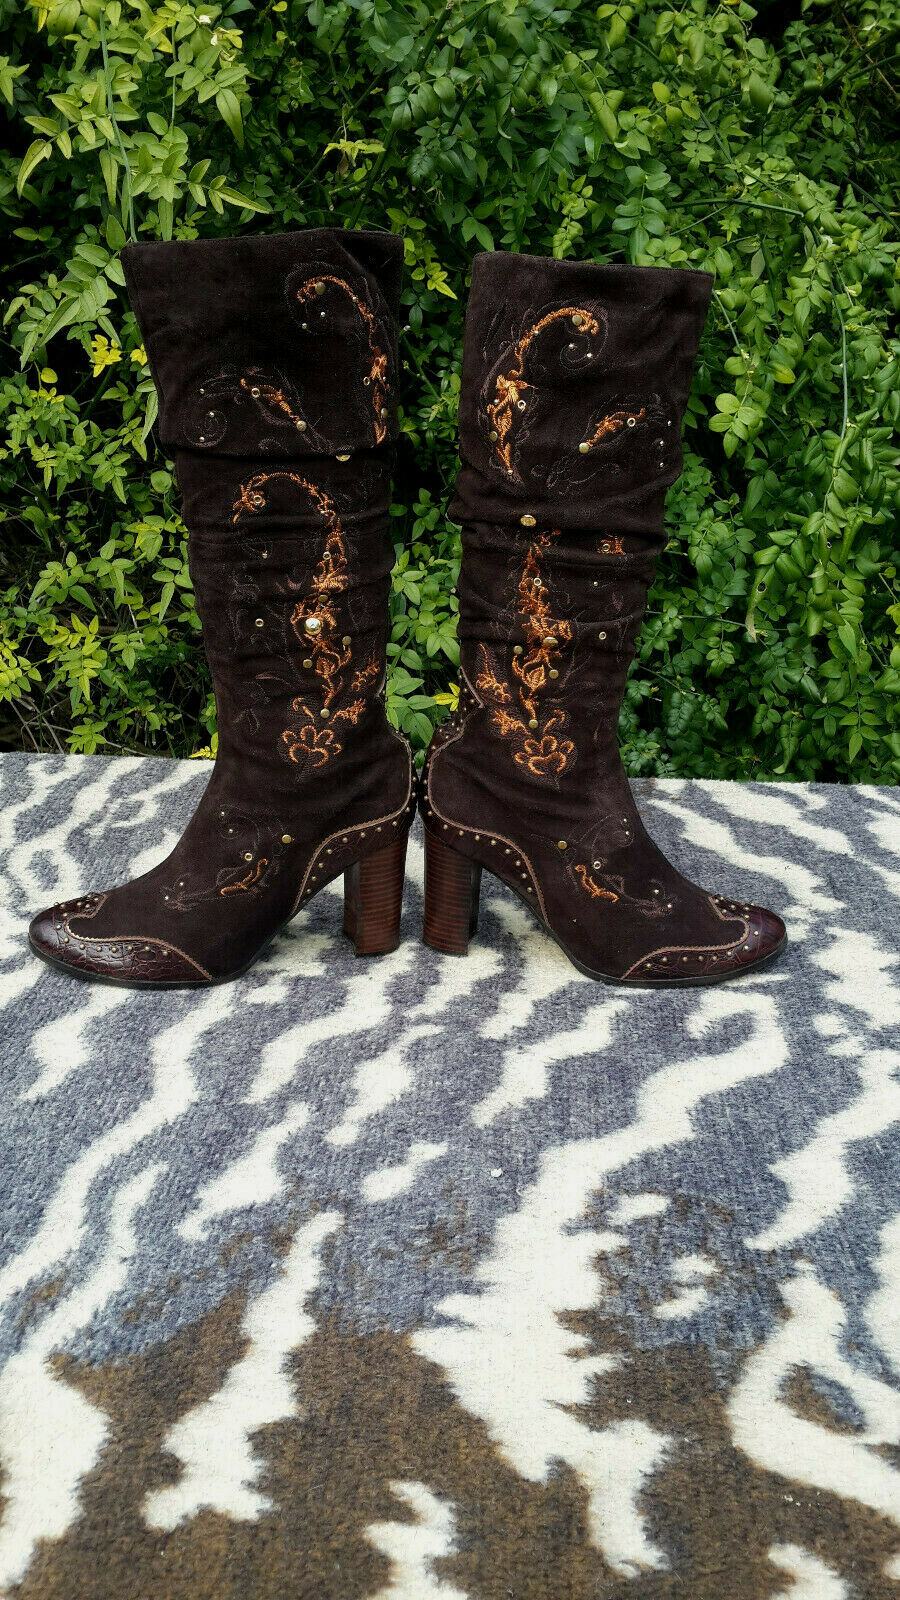 Mallanee brown Suede leather high heeled boots UK size 6